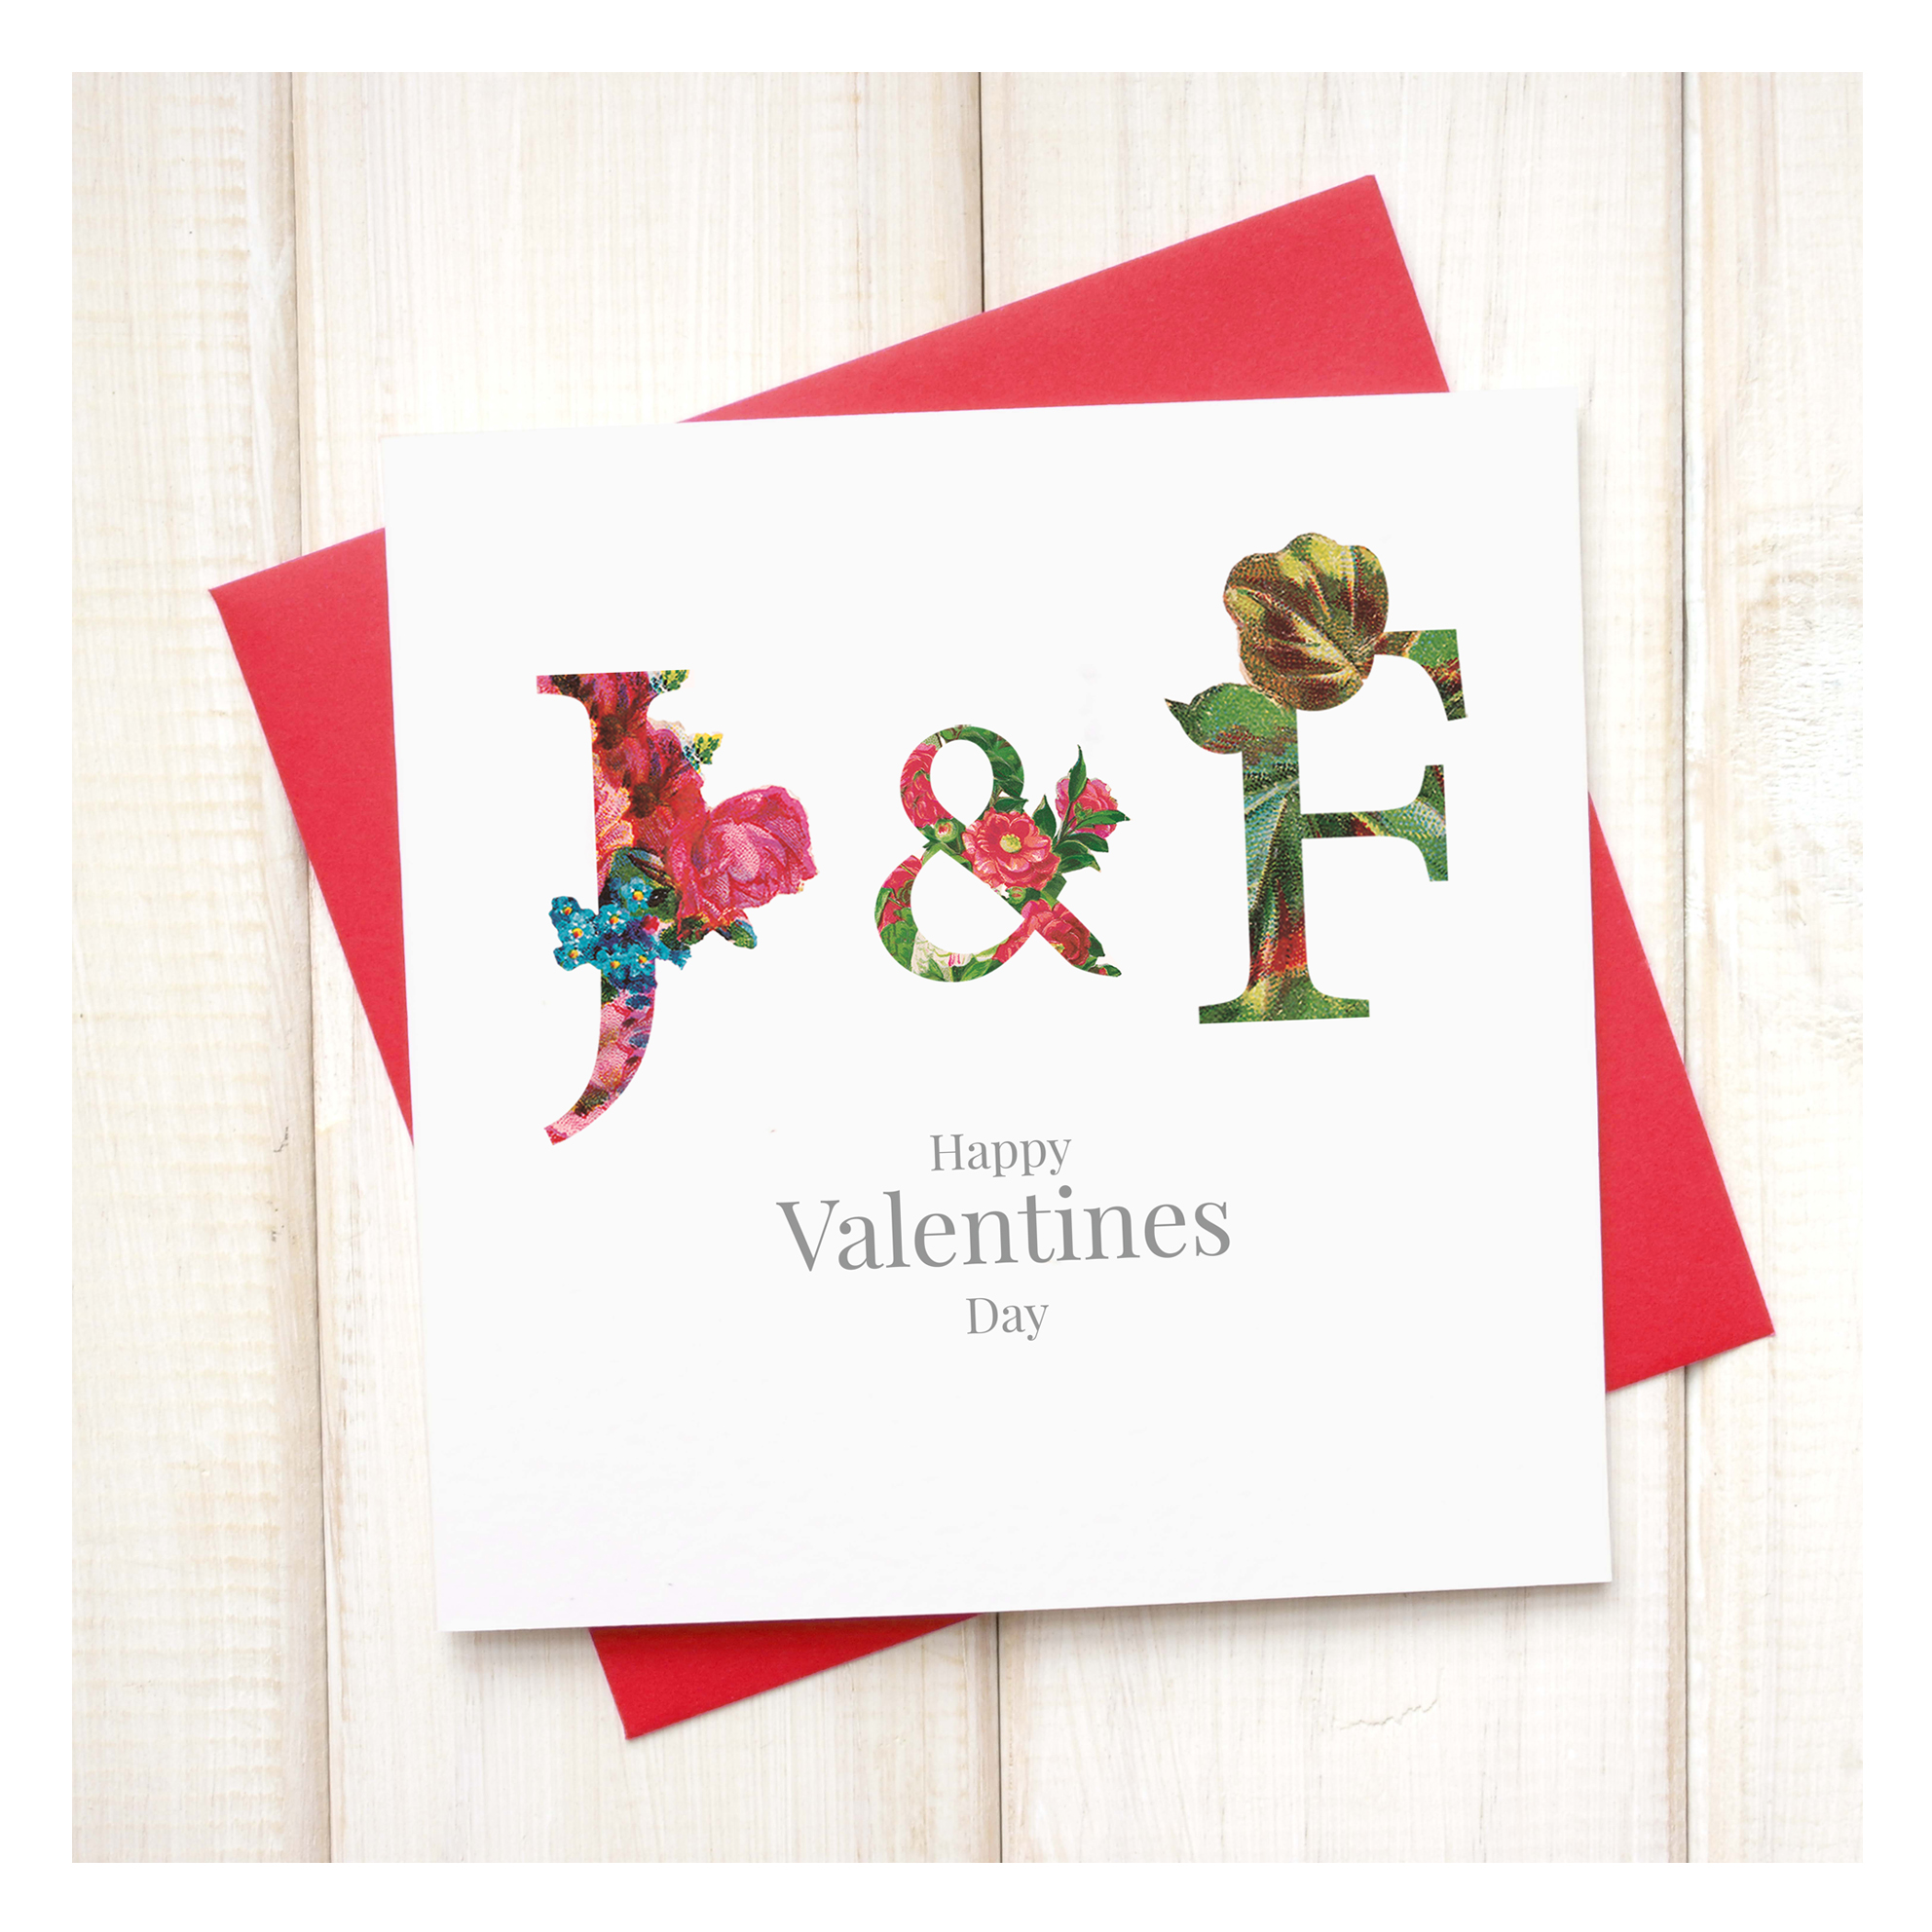 chi-chi-moi-personalised-initial-floral-valentines-day-greetings-card-red-envelope